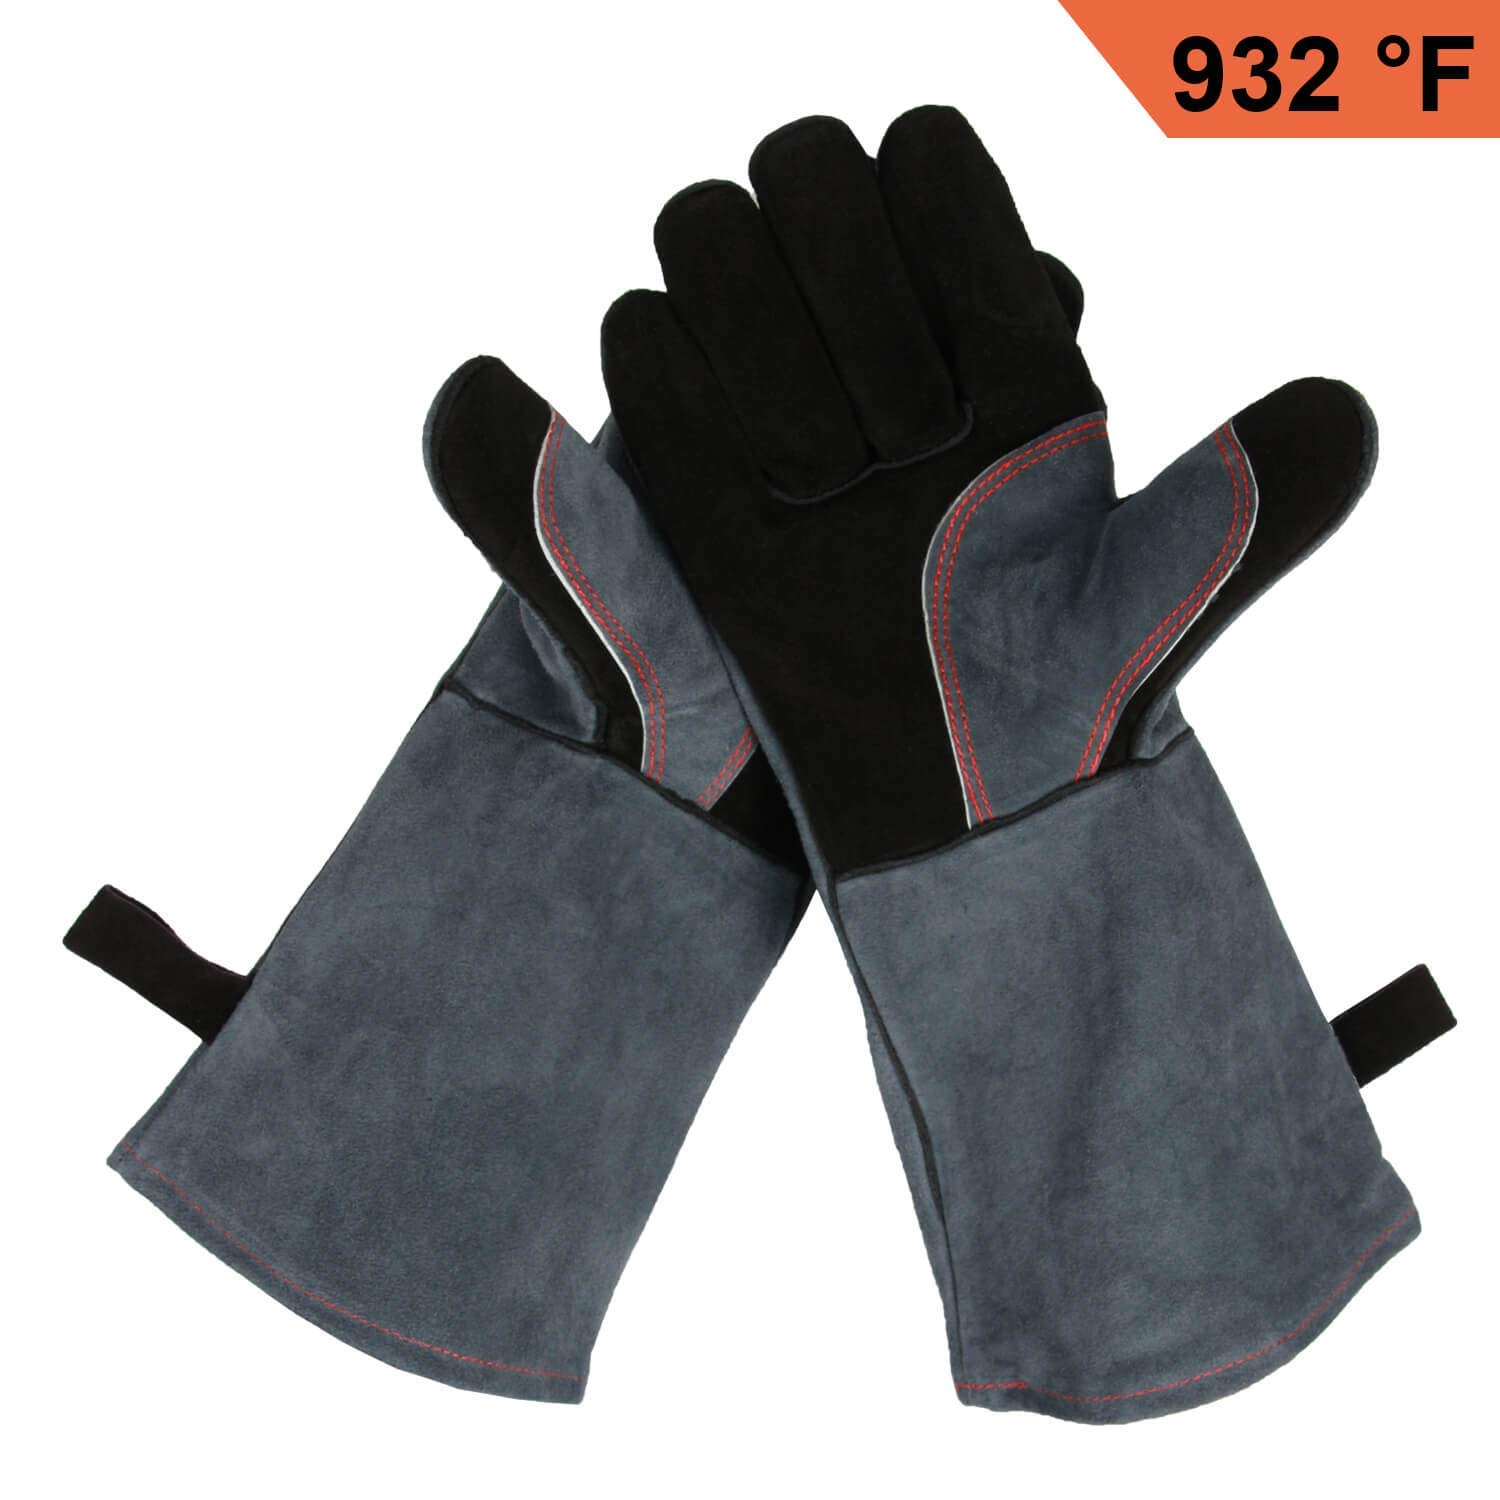 Milliongo Heat Resistant BBQ Gloves, Leather Oven Mitts Fireproof Safety Work Gloves with Long Sleeves for Barbecue Grilling Welding, Black Gray